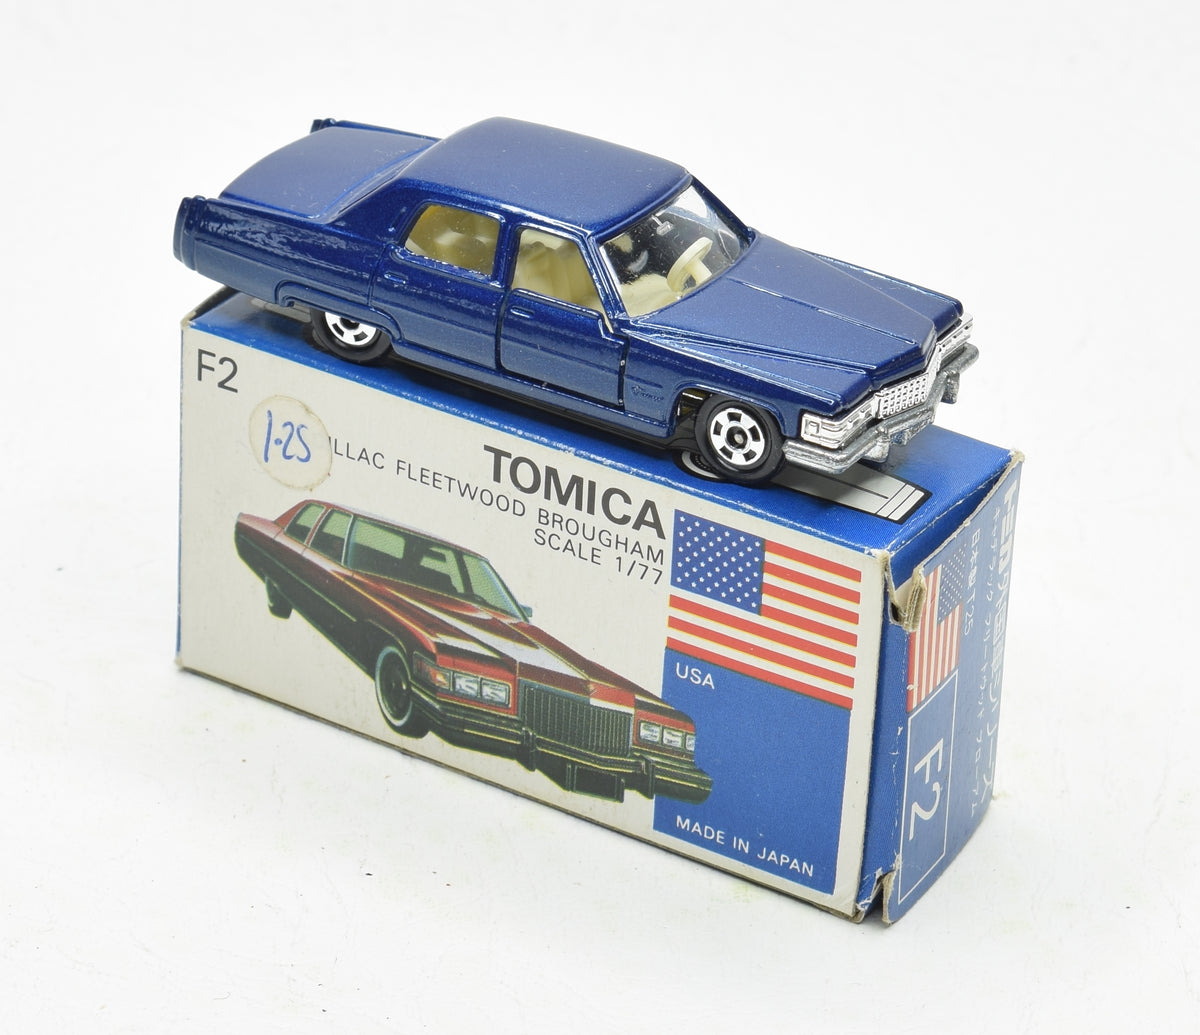 Tomica F2 Cadillac Fleetwood Virtually Mint/Boxed The 'Victoria' Collection